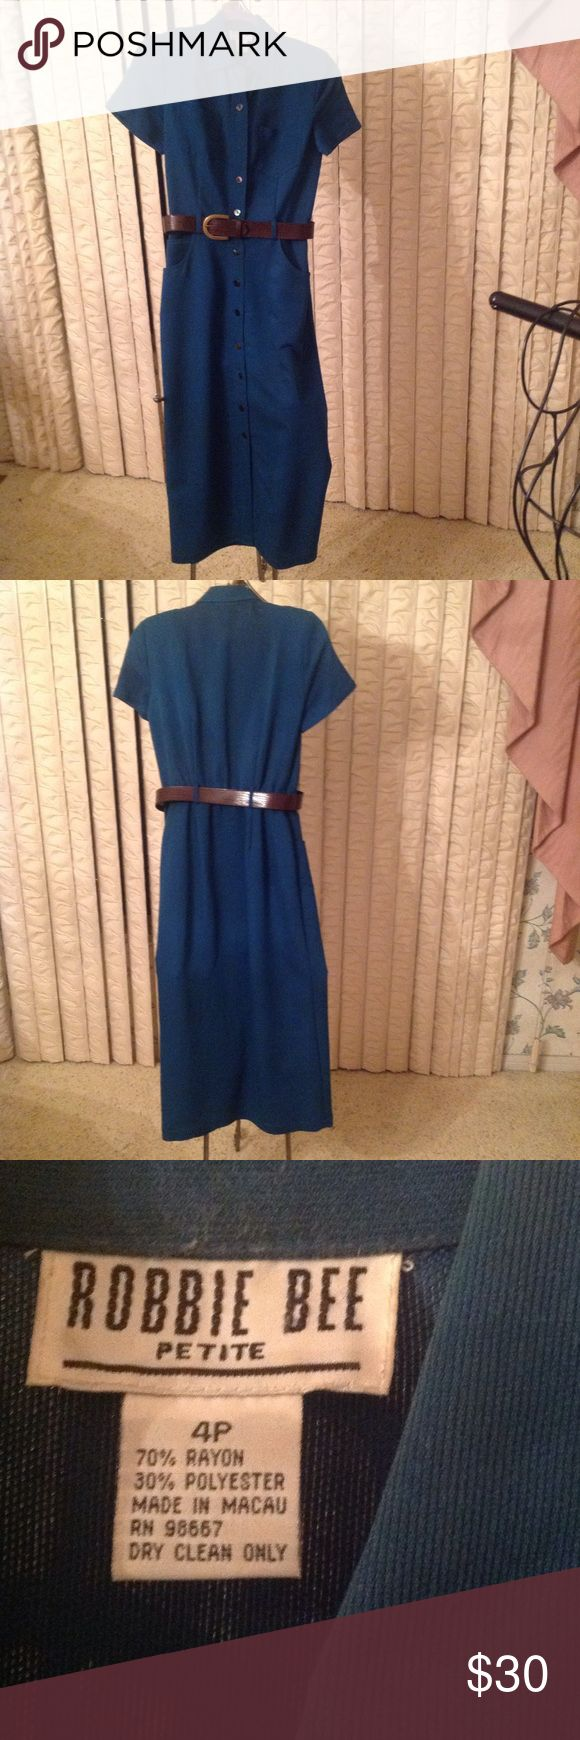 ROBBIE BEE Dress Teal with brown croc belt....Button front...Patch breast pockets...waist pockets Robbie Bee Dresses Midi